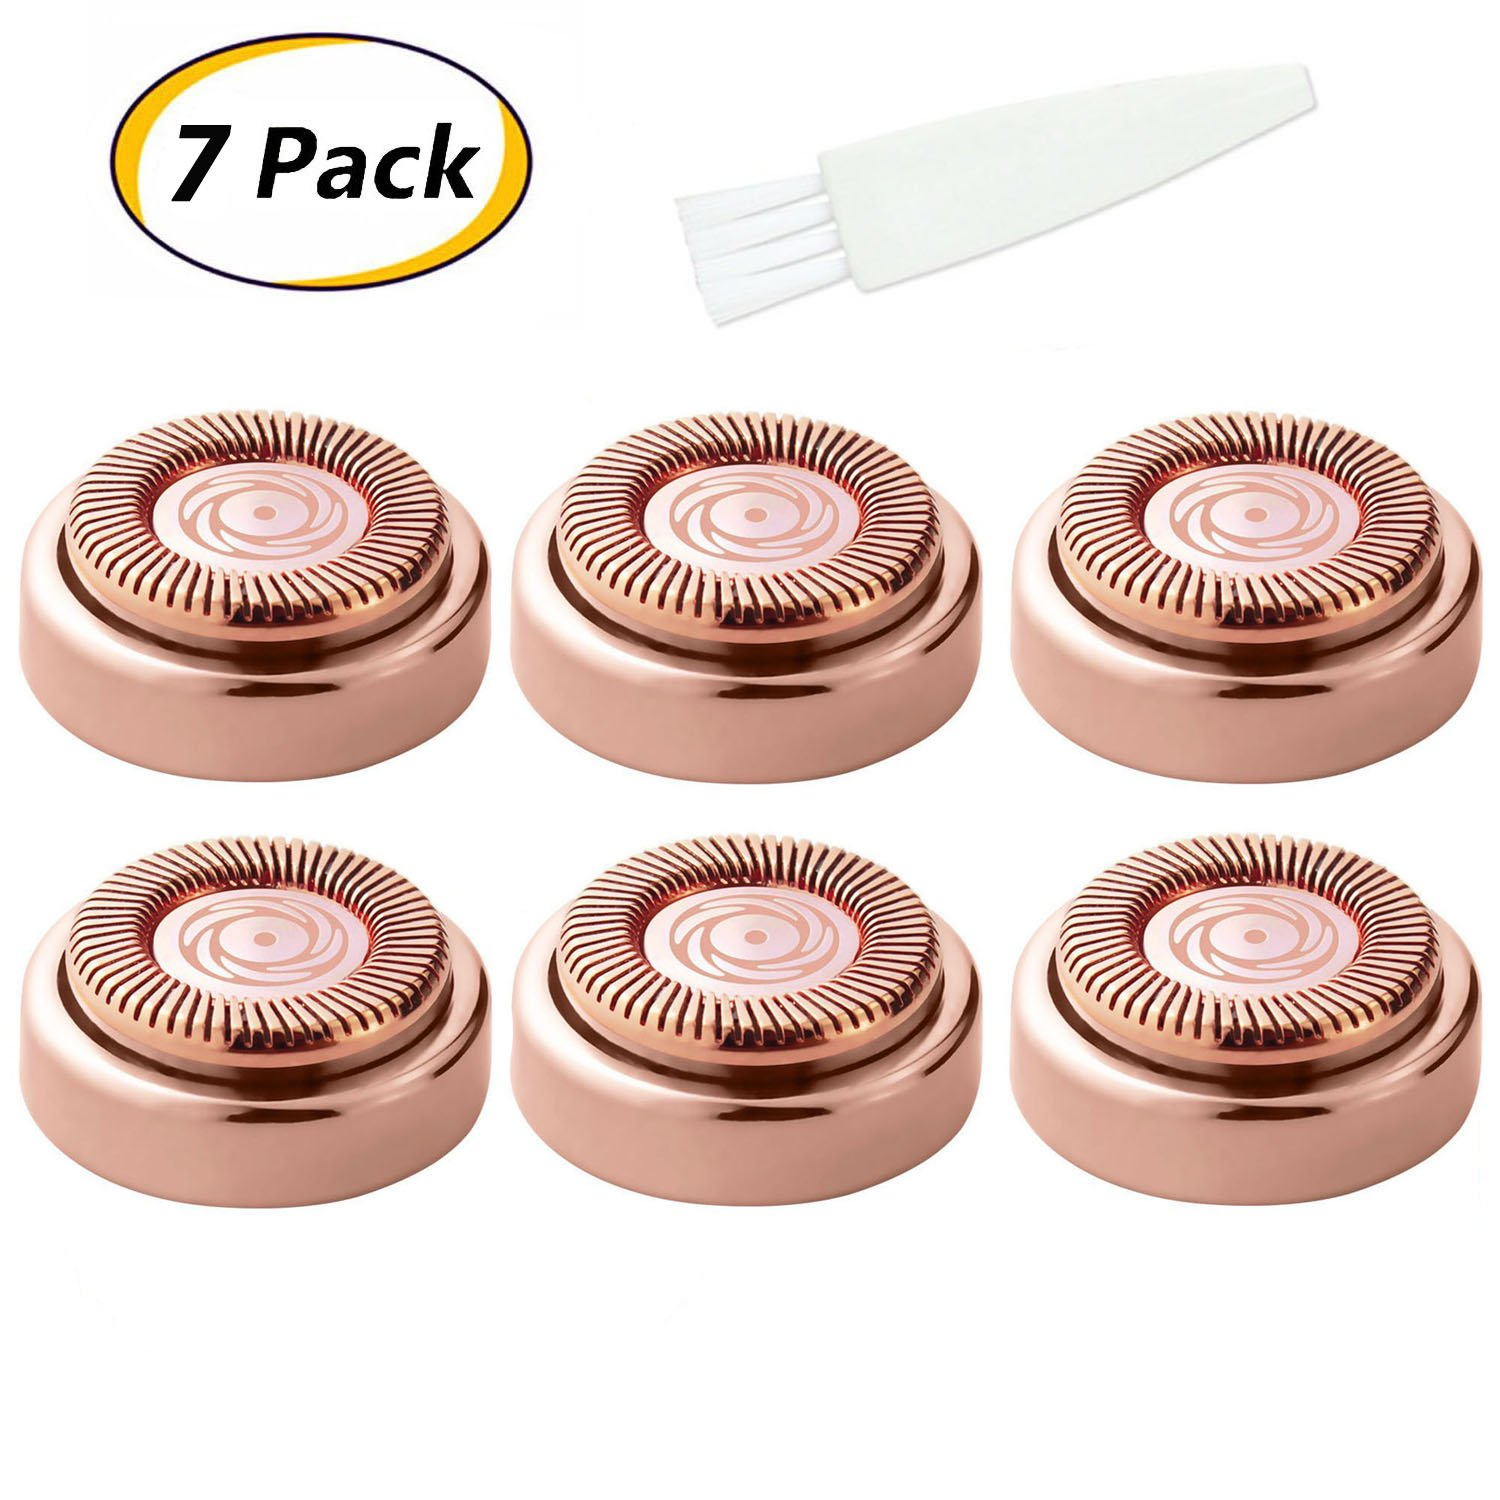 Facial Hair Remover Replacement Heads Replacing Blades for Good Finishing and Well Touching 18K Gold-Plated - 6PACK